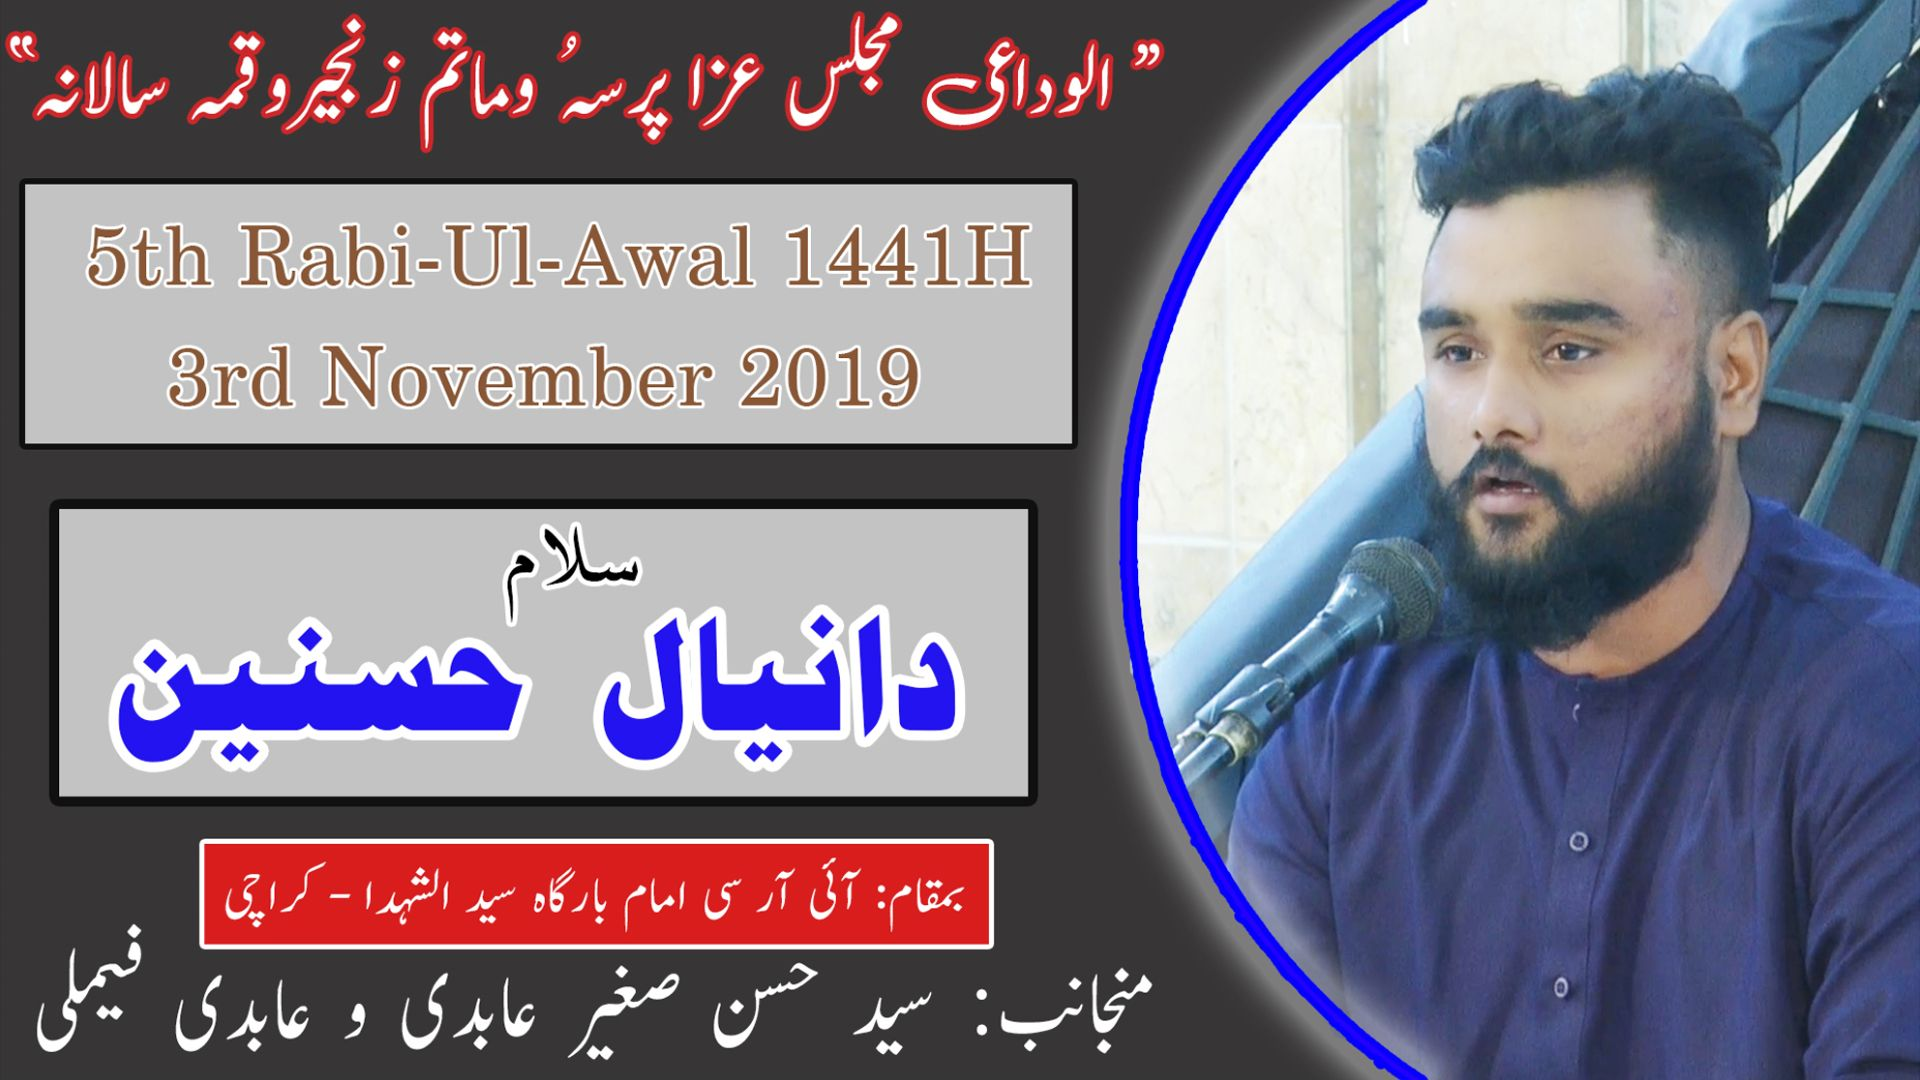 Salam | Daniyal Hasnain | 5th Rabi Awal 1441/2019 - Imam Bargah Islamic Research Center - Karachi